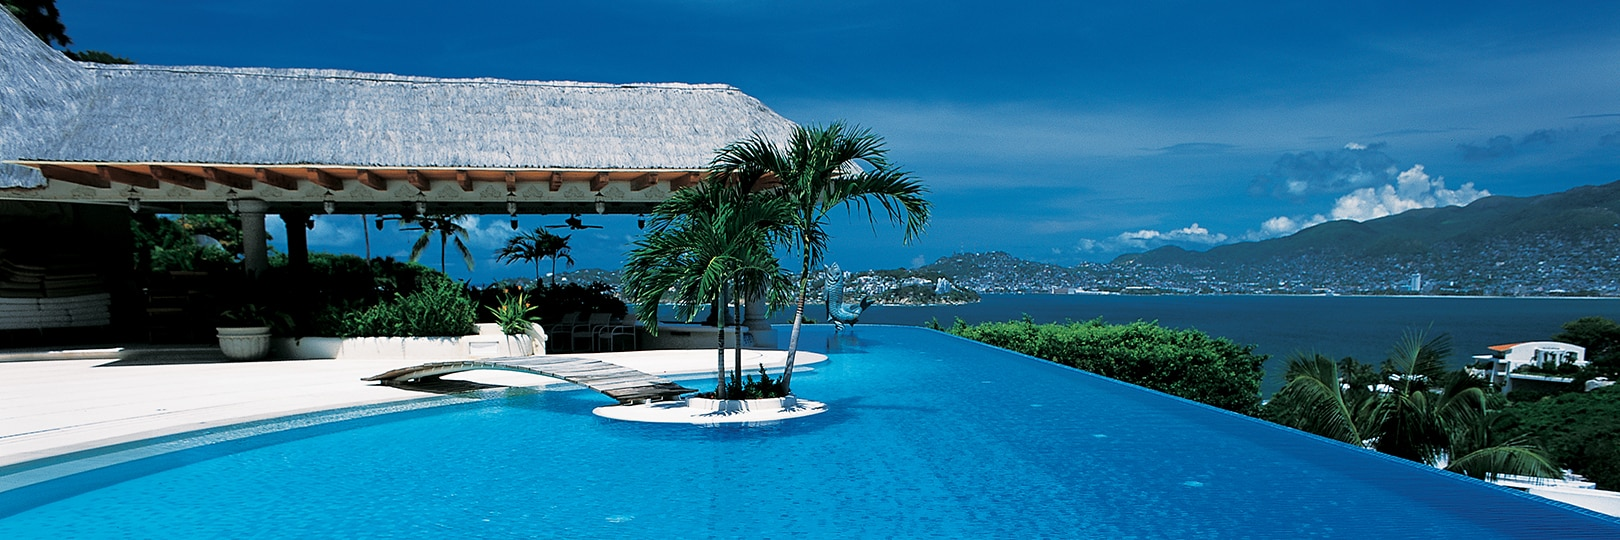 Infinity pool with white and blue tile, wood bridge to swim-up island with palm trees, patio with thatched roof, ocean view with mountains in the background.